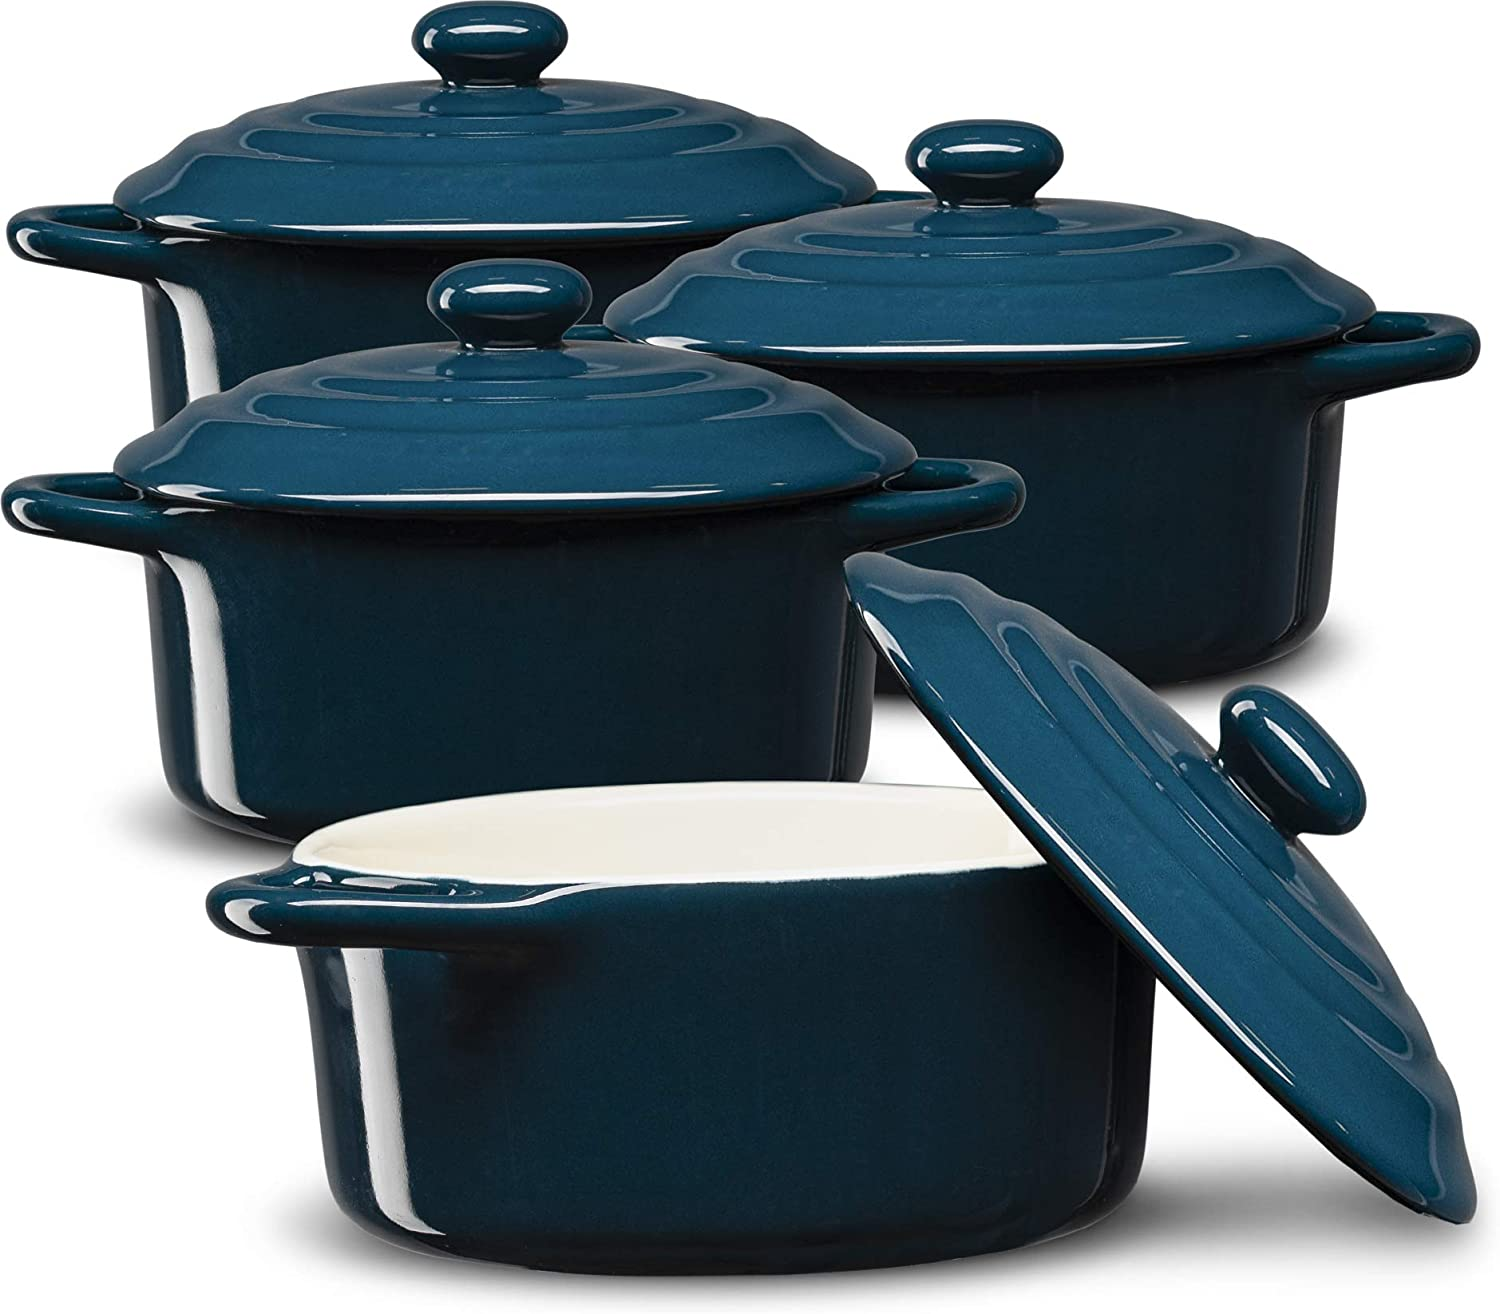 Mini Cocotte, Casserole Dish, Dutch Oven, Ceramic Make, Easy to Lift Lid, Set of 4, (Navy Blue)